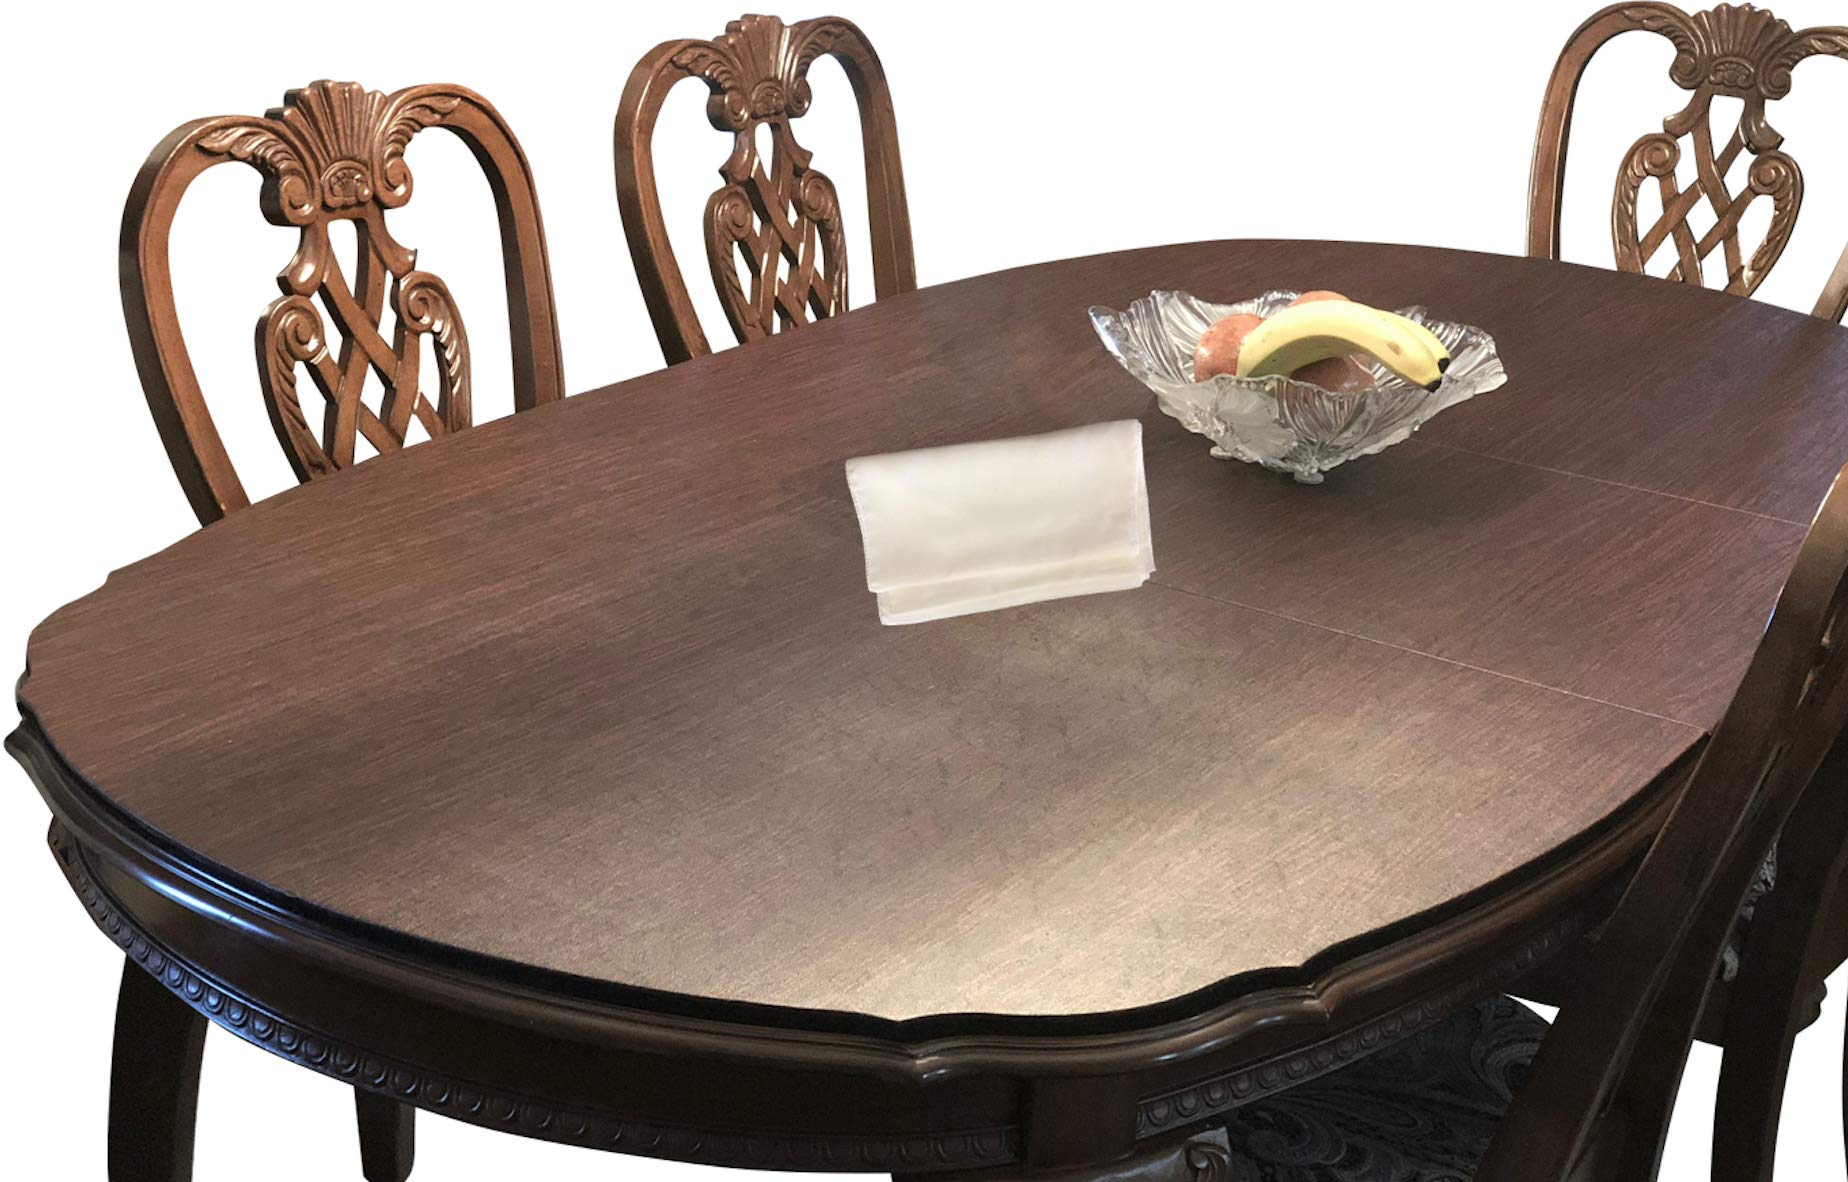 Very Beautiful And Practical Narrow Dining Table Table Pads for DINING ROOM TABLE Custom Made, TOP of the Line, PREMIUM  Quality